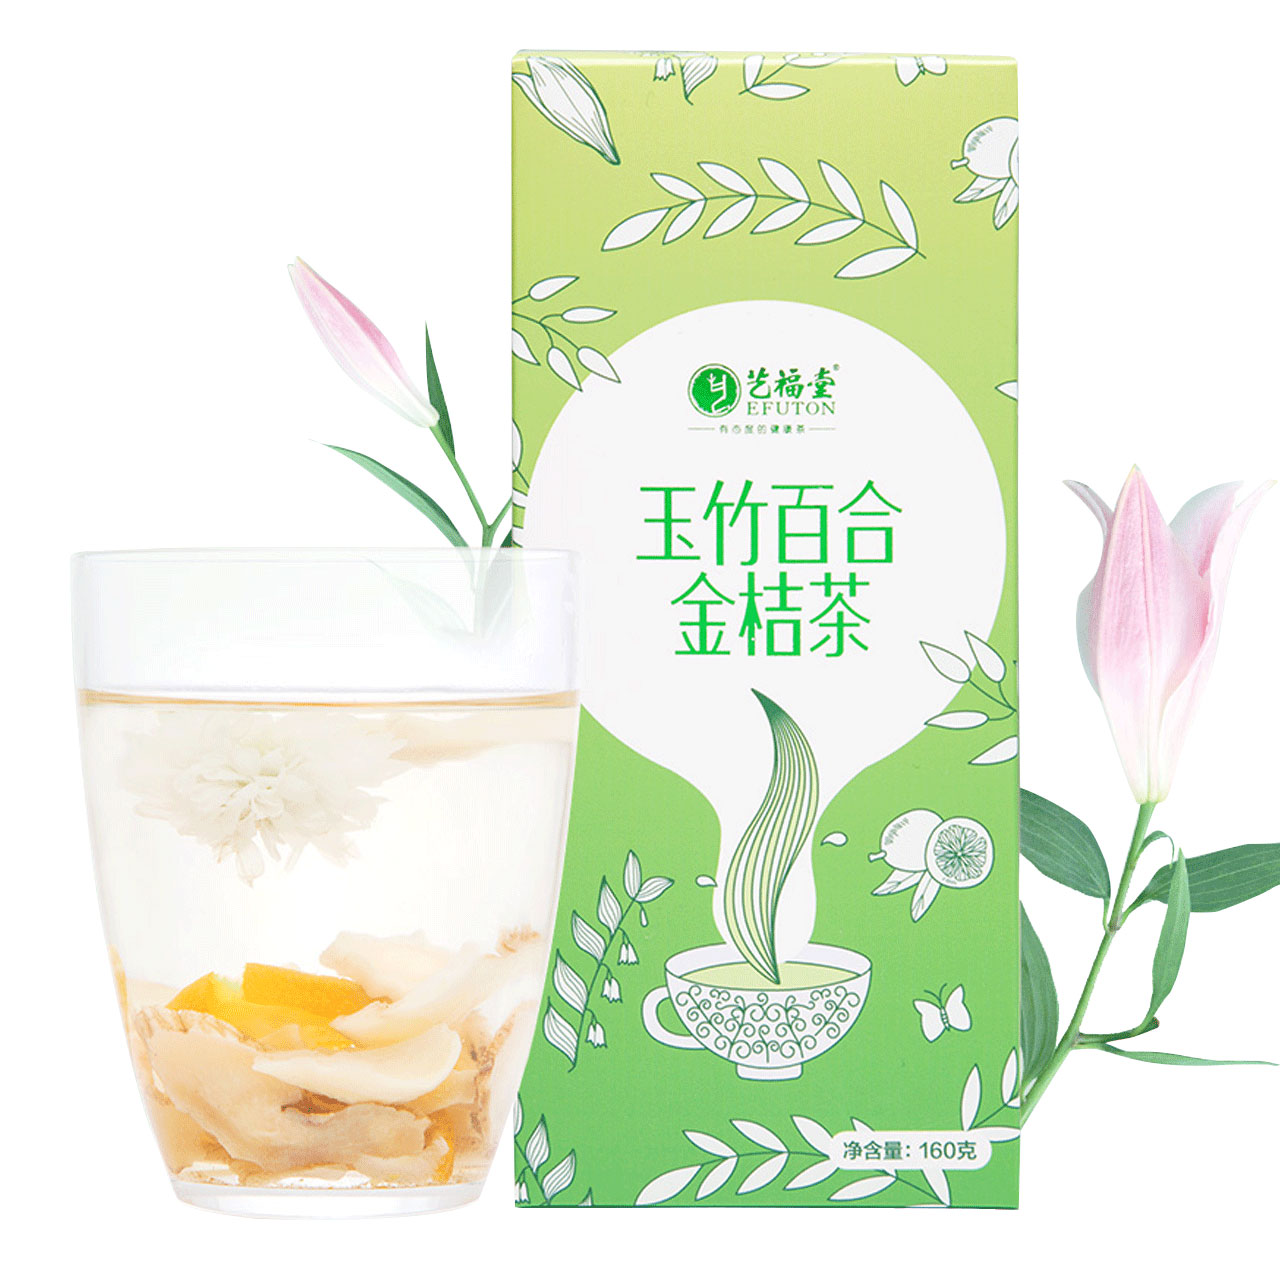 Categorycombination Type Flower Teaproductnameyifutang Flower And